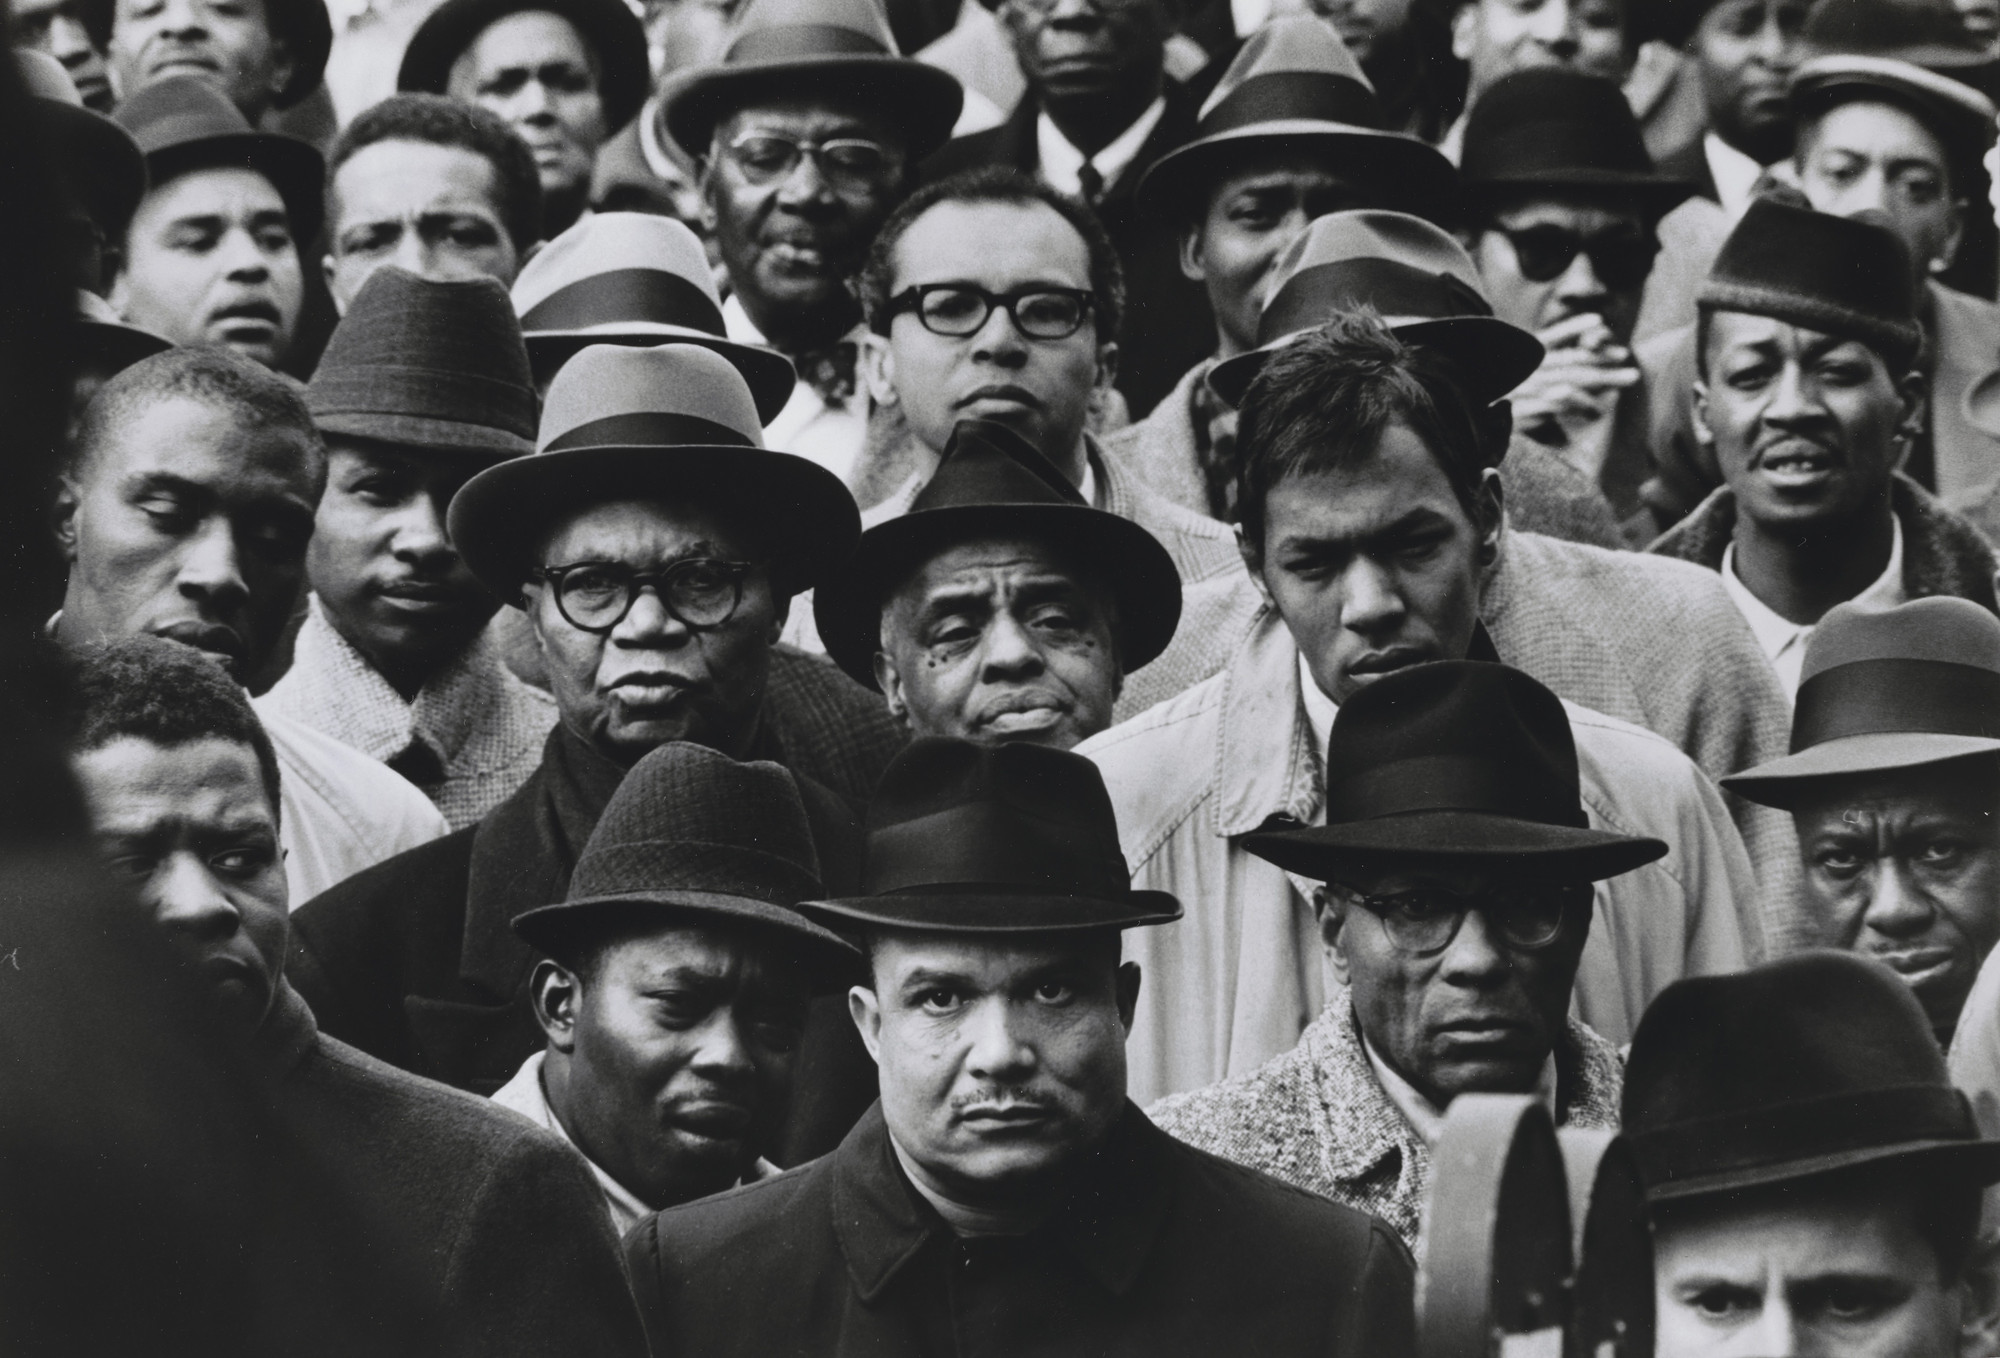 Gordon Parks. Black Muslim Rally, Harlem, New York. 1963